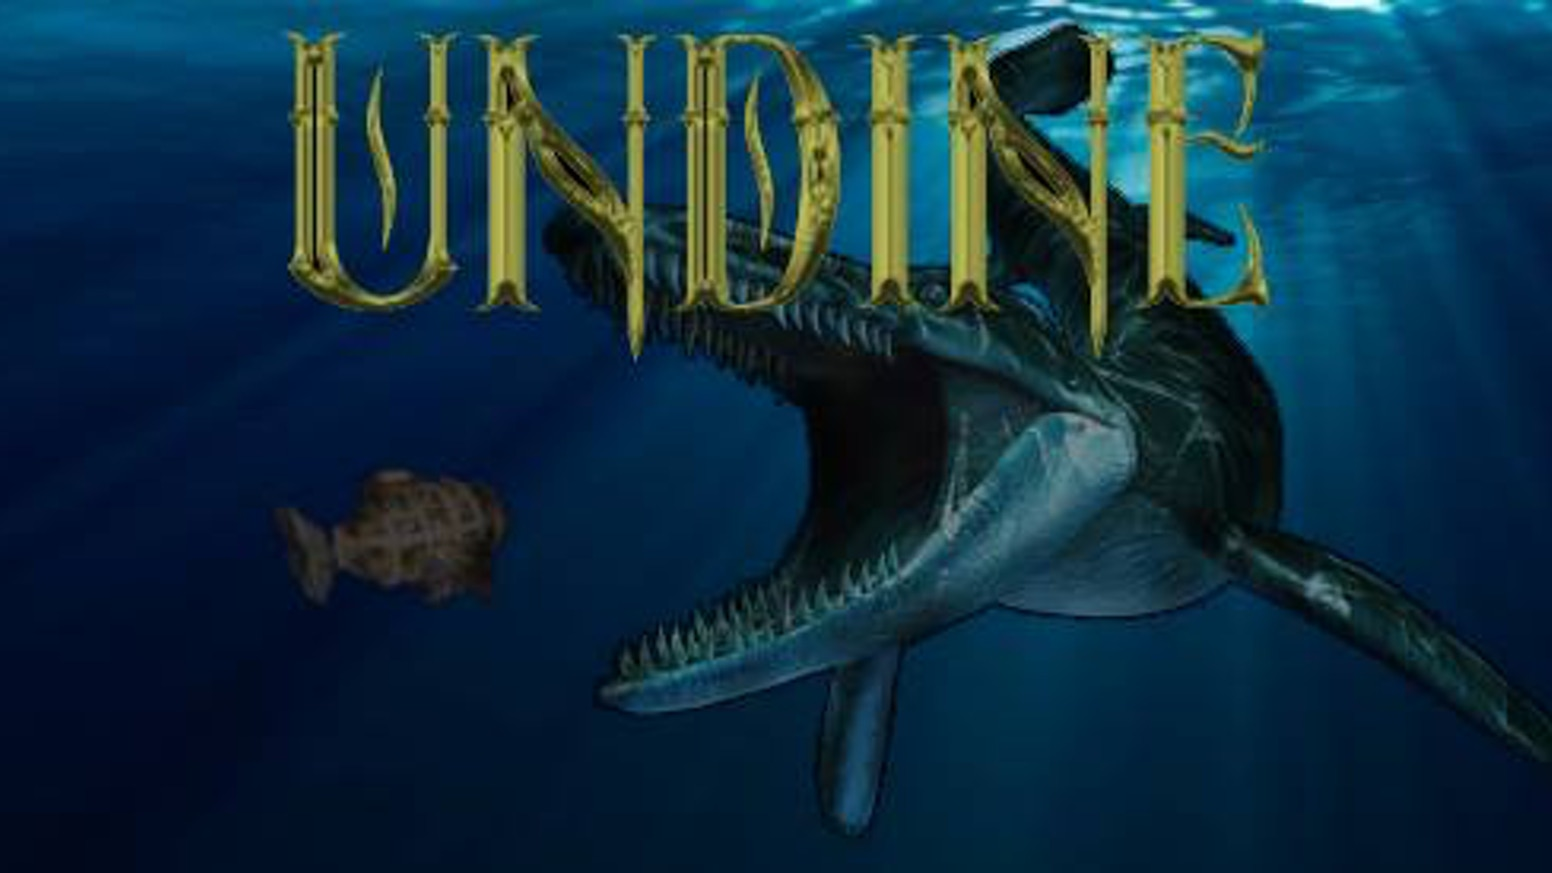 Undine is a first person single player steampunk based underwater exploration game, where you explore, fight and scavenge lost cities.